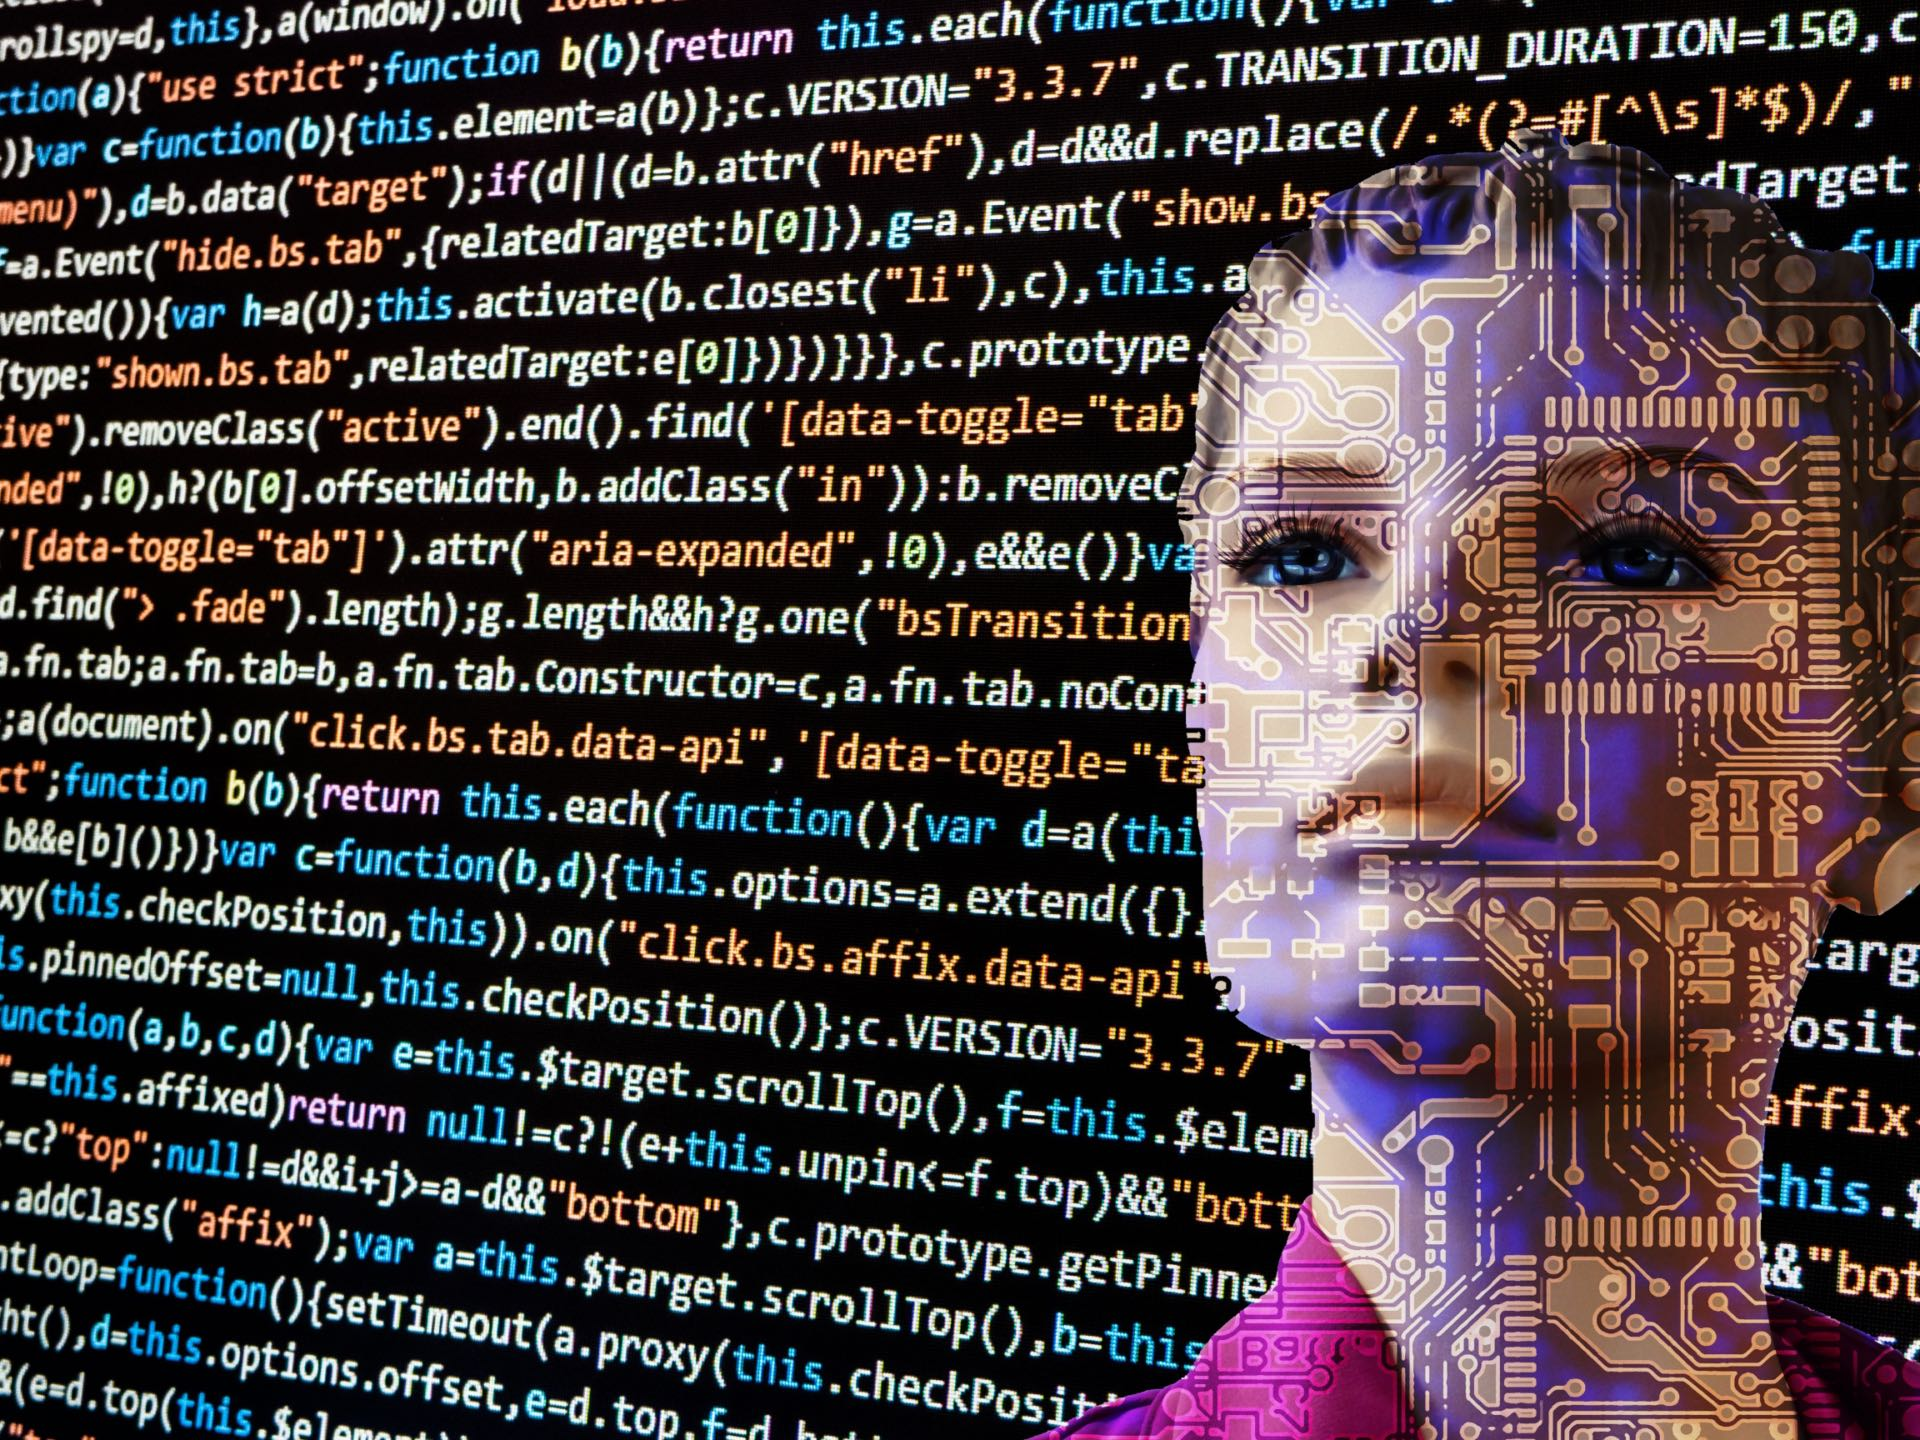 Impact of AI and ML technology on jobs